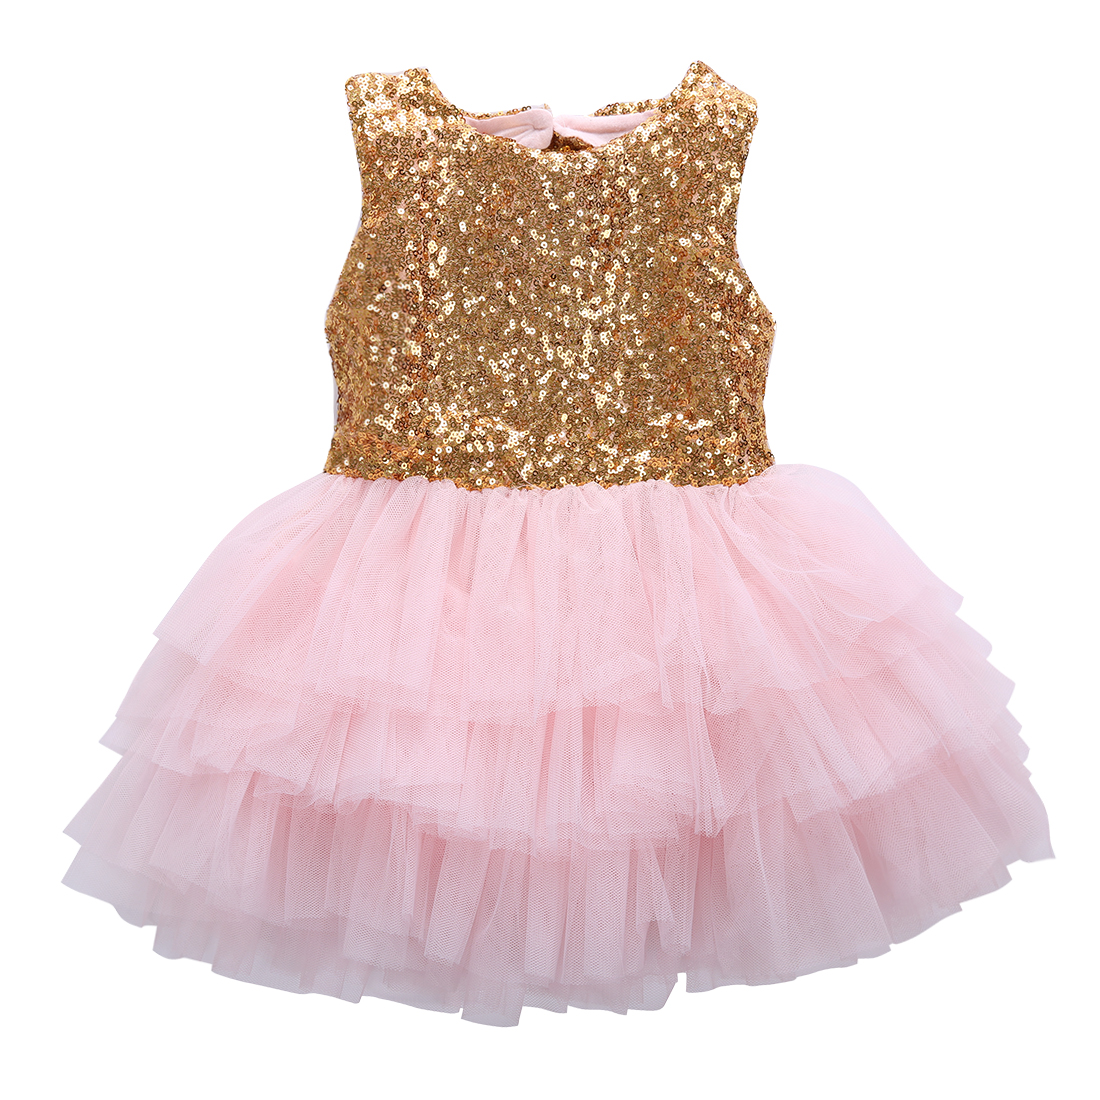 1e7b268da pudcoco Kids Baby Girl Sequins Dress Party Dresses Bridesmaid Dress Gown  baby girl party wedding formal